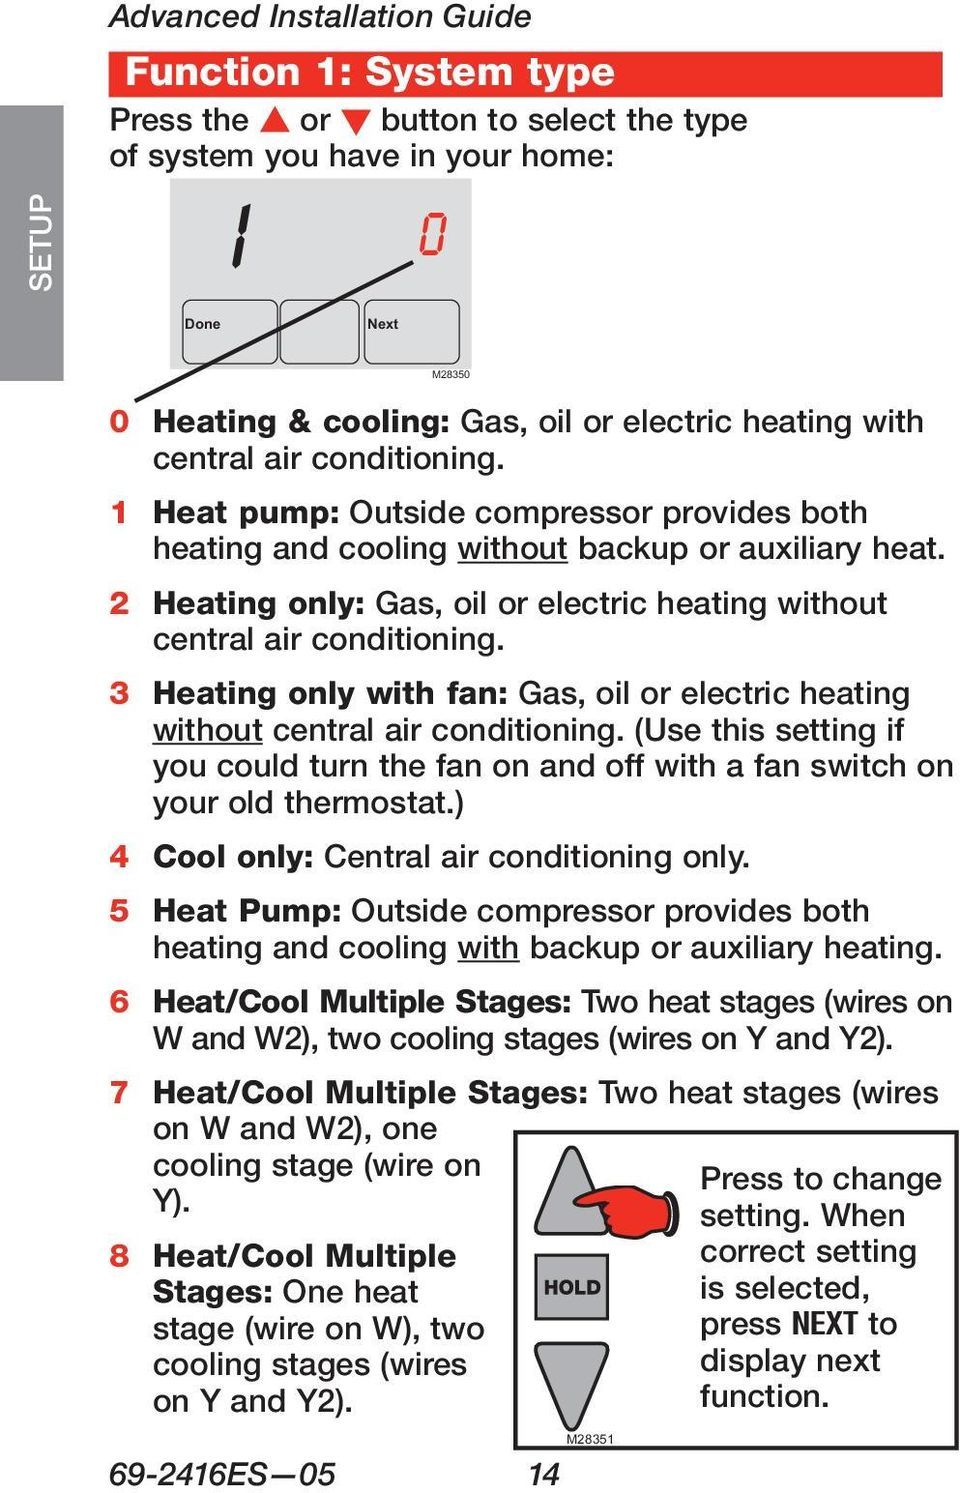 2 Heating only: Gas, oil or electric heating without central air conditioning. 3 Heating only with fan: Gas, oil or electric heating without central air conditioning.